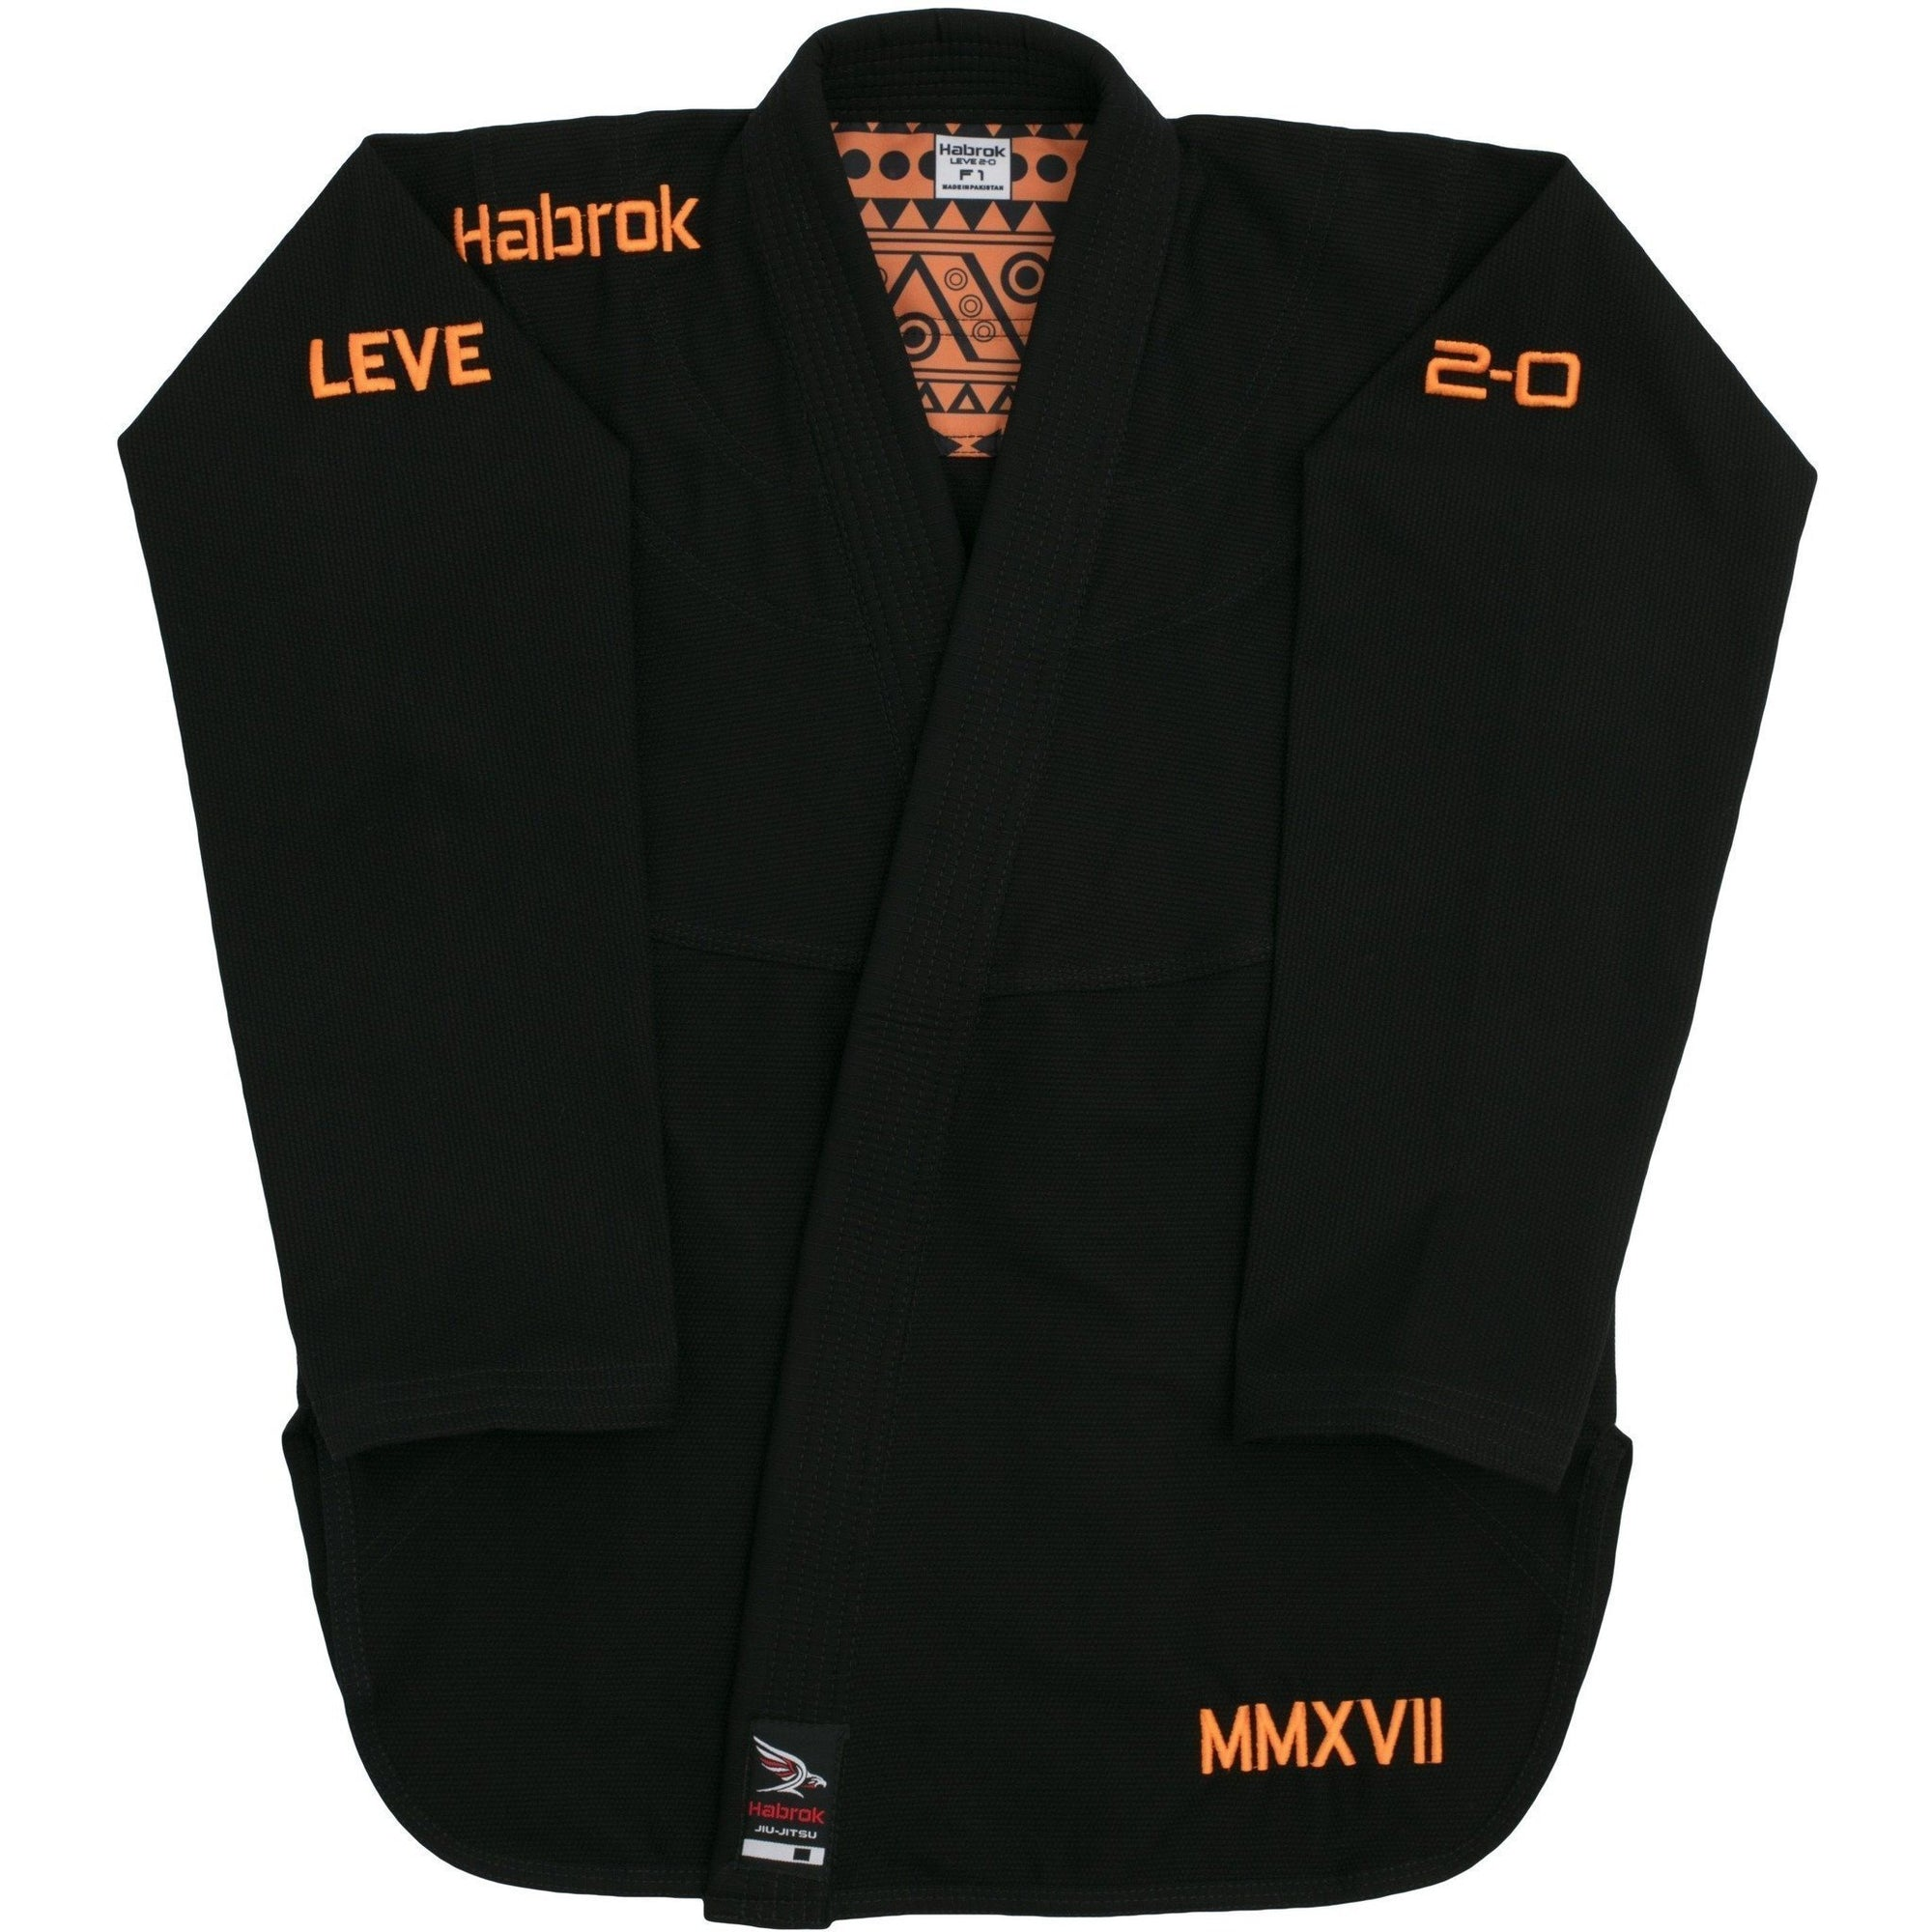 Leve 2.0 | Women | Premium Ultra Light Weight Gi